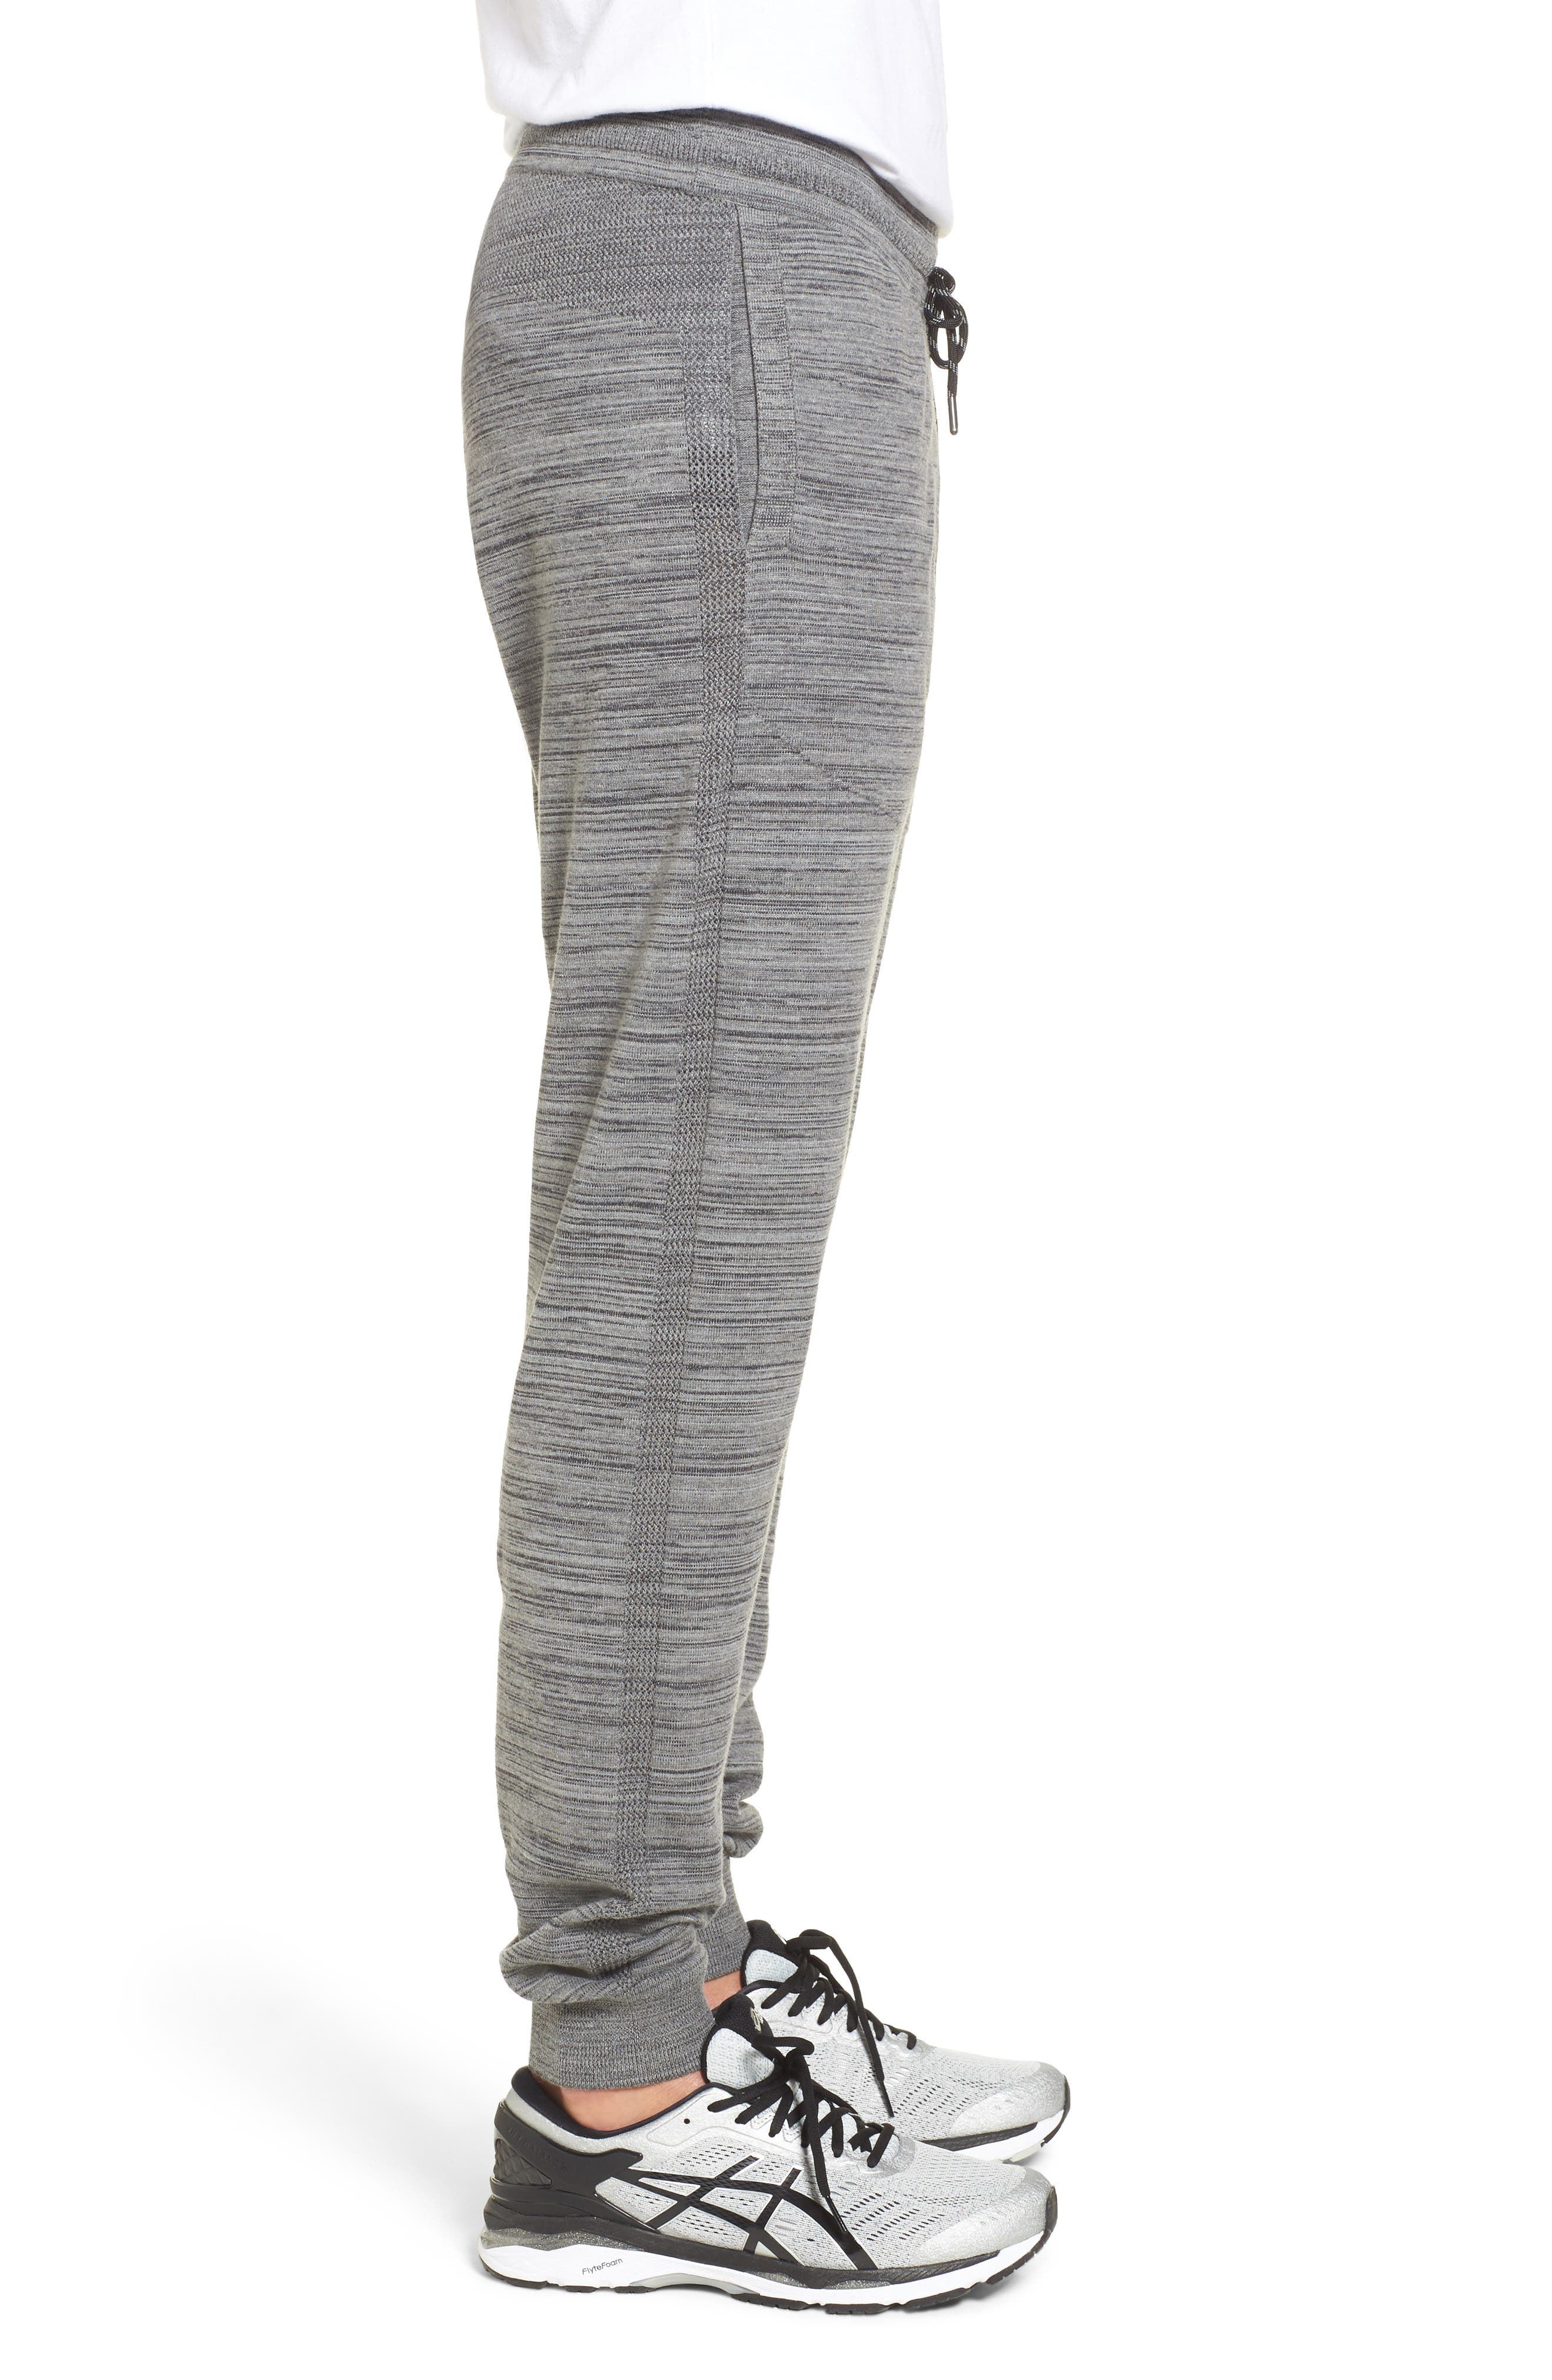 Tech Sweater Knit Jogger Pants,                             Alternate thumbnail 3, color,                             Grey Obsidian Spacedye